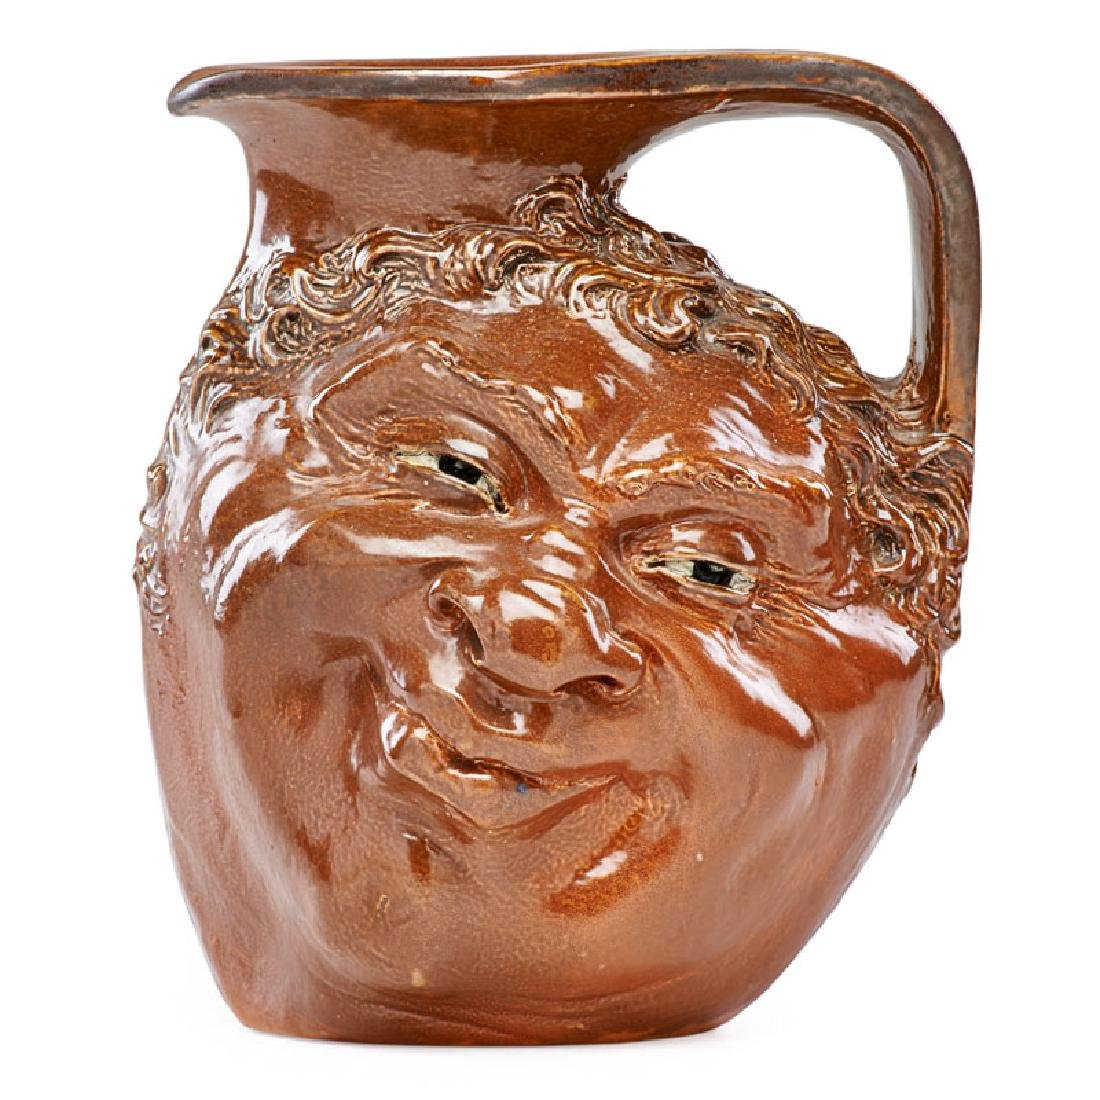 R.W. MARTIN; MARTIN BROTHERS Double-sided face jug